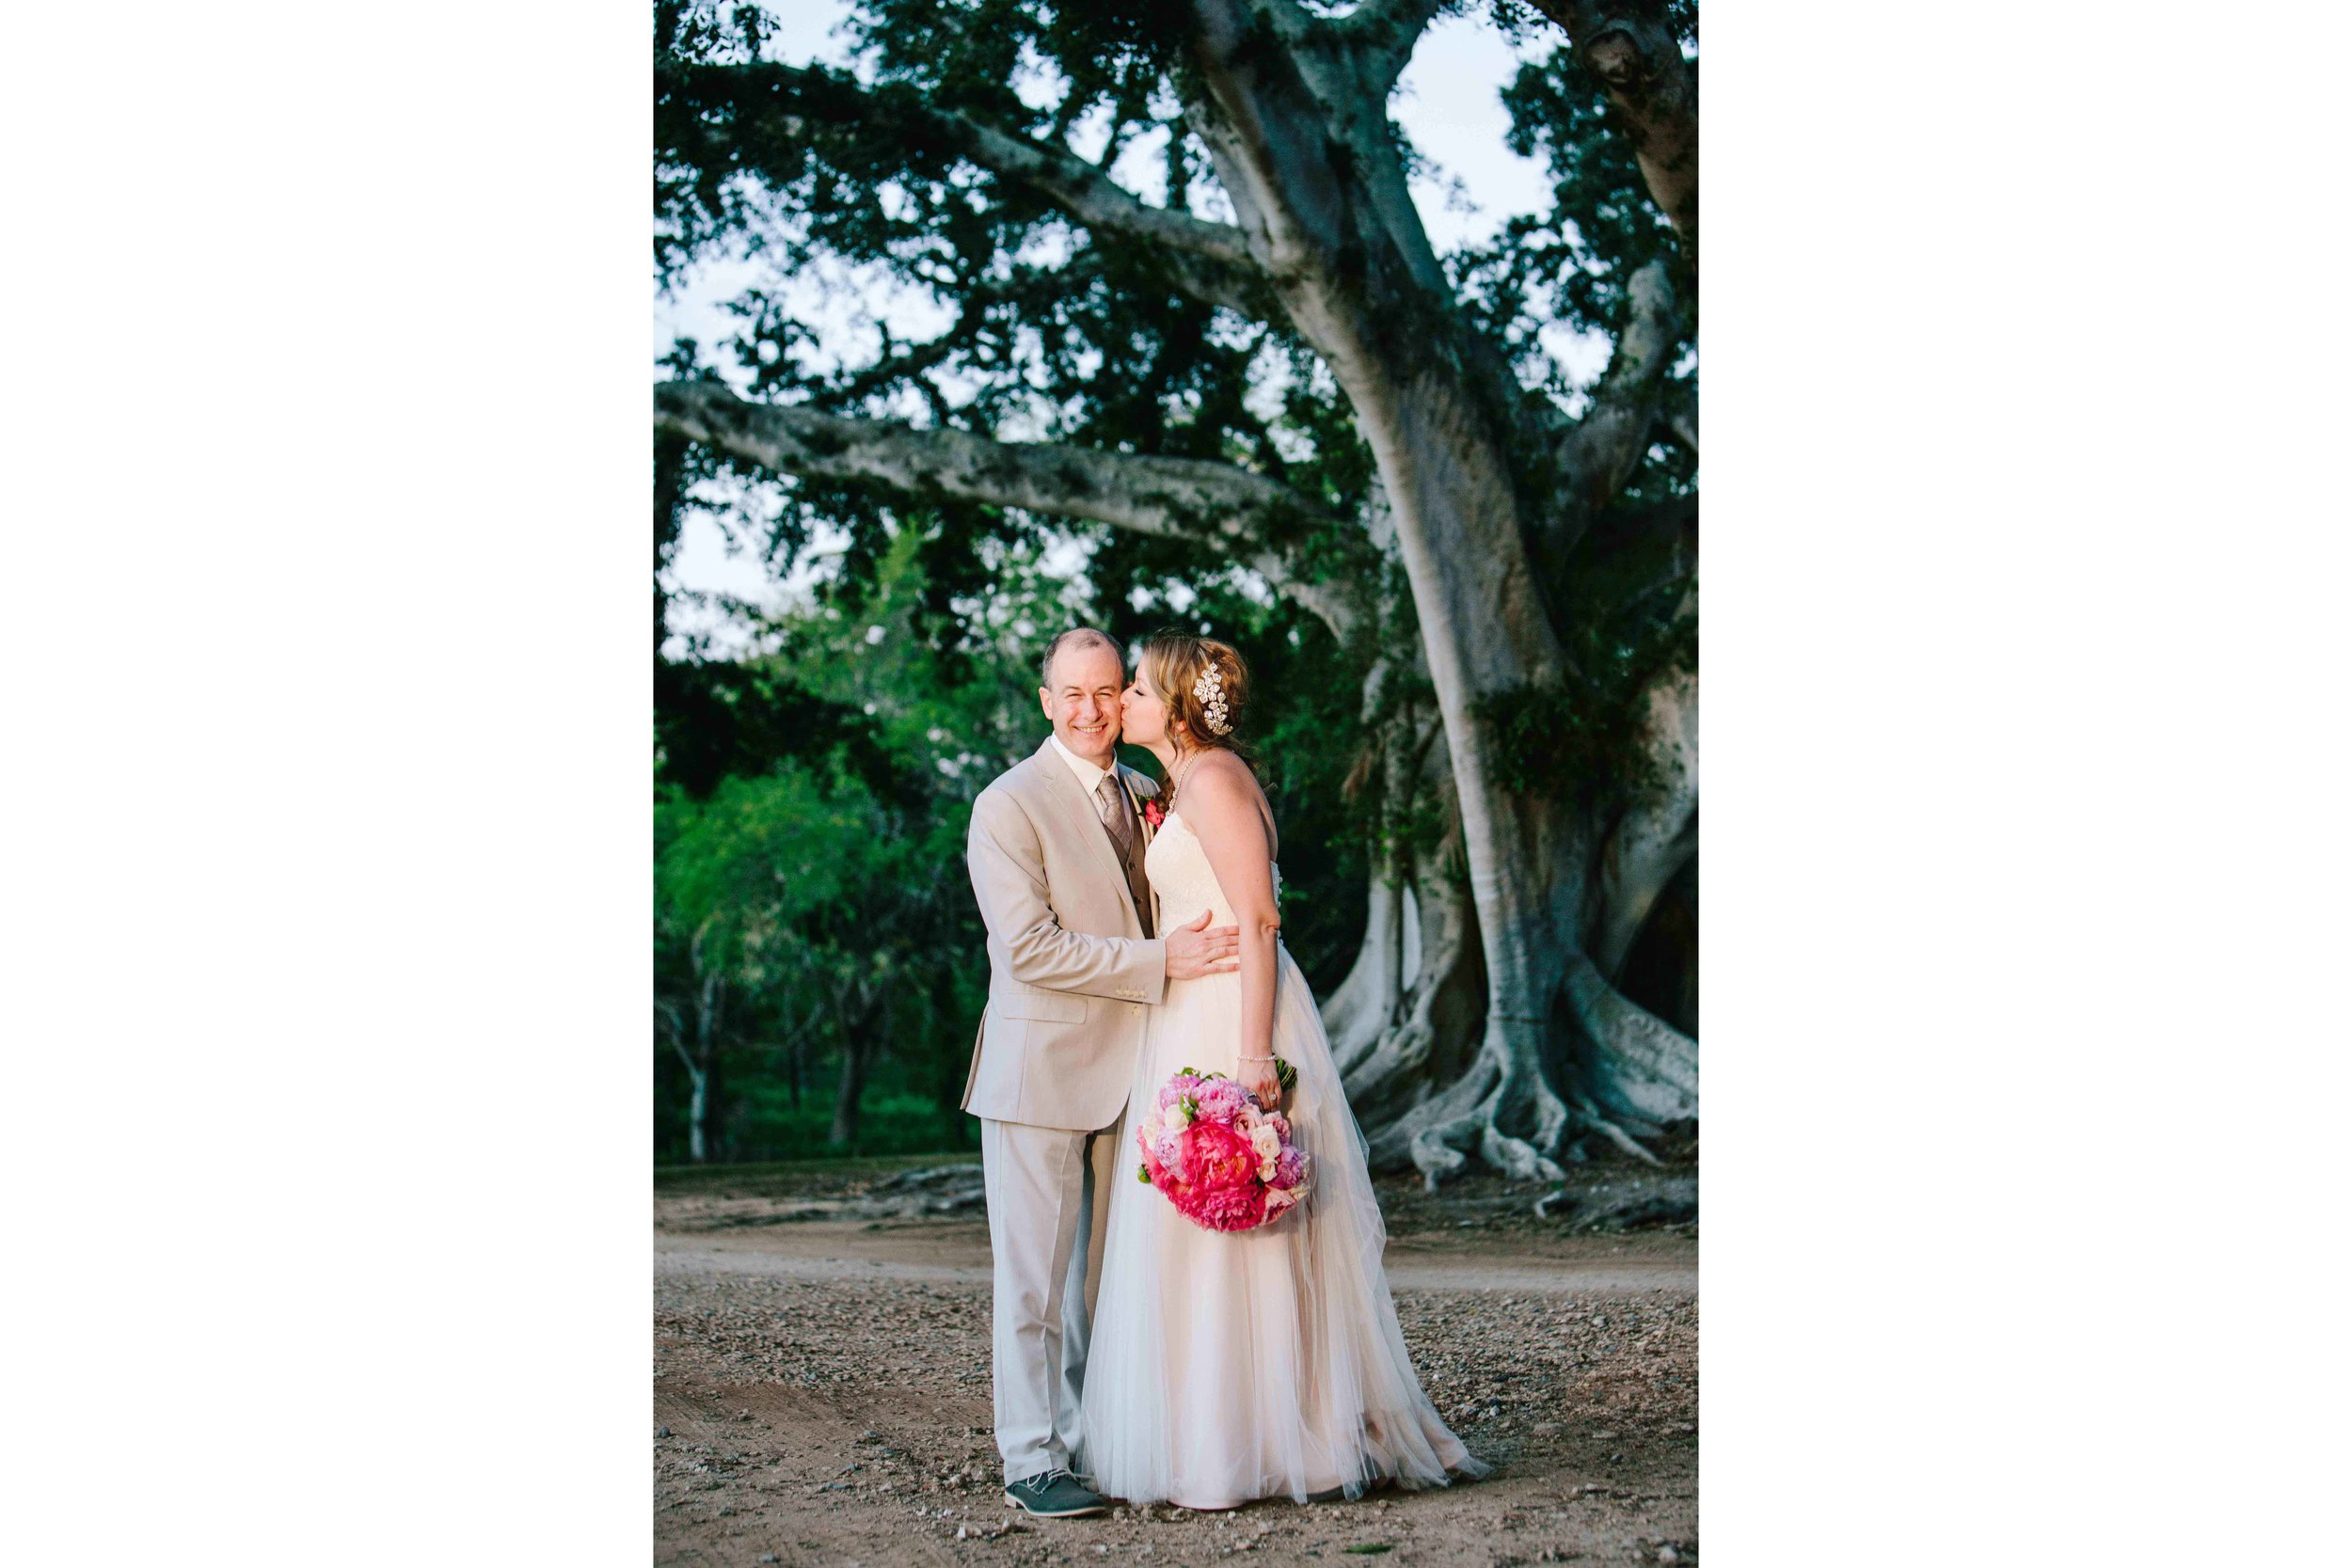 Cute Wedding Photography at Dillingham Ranch